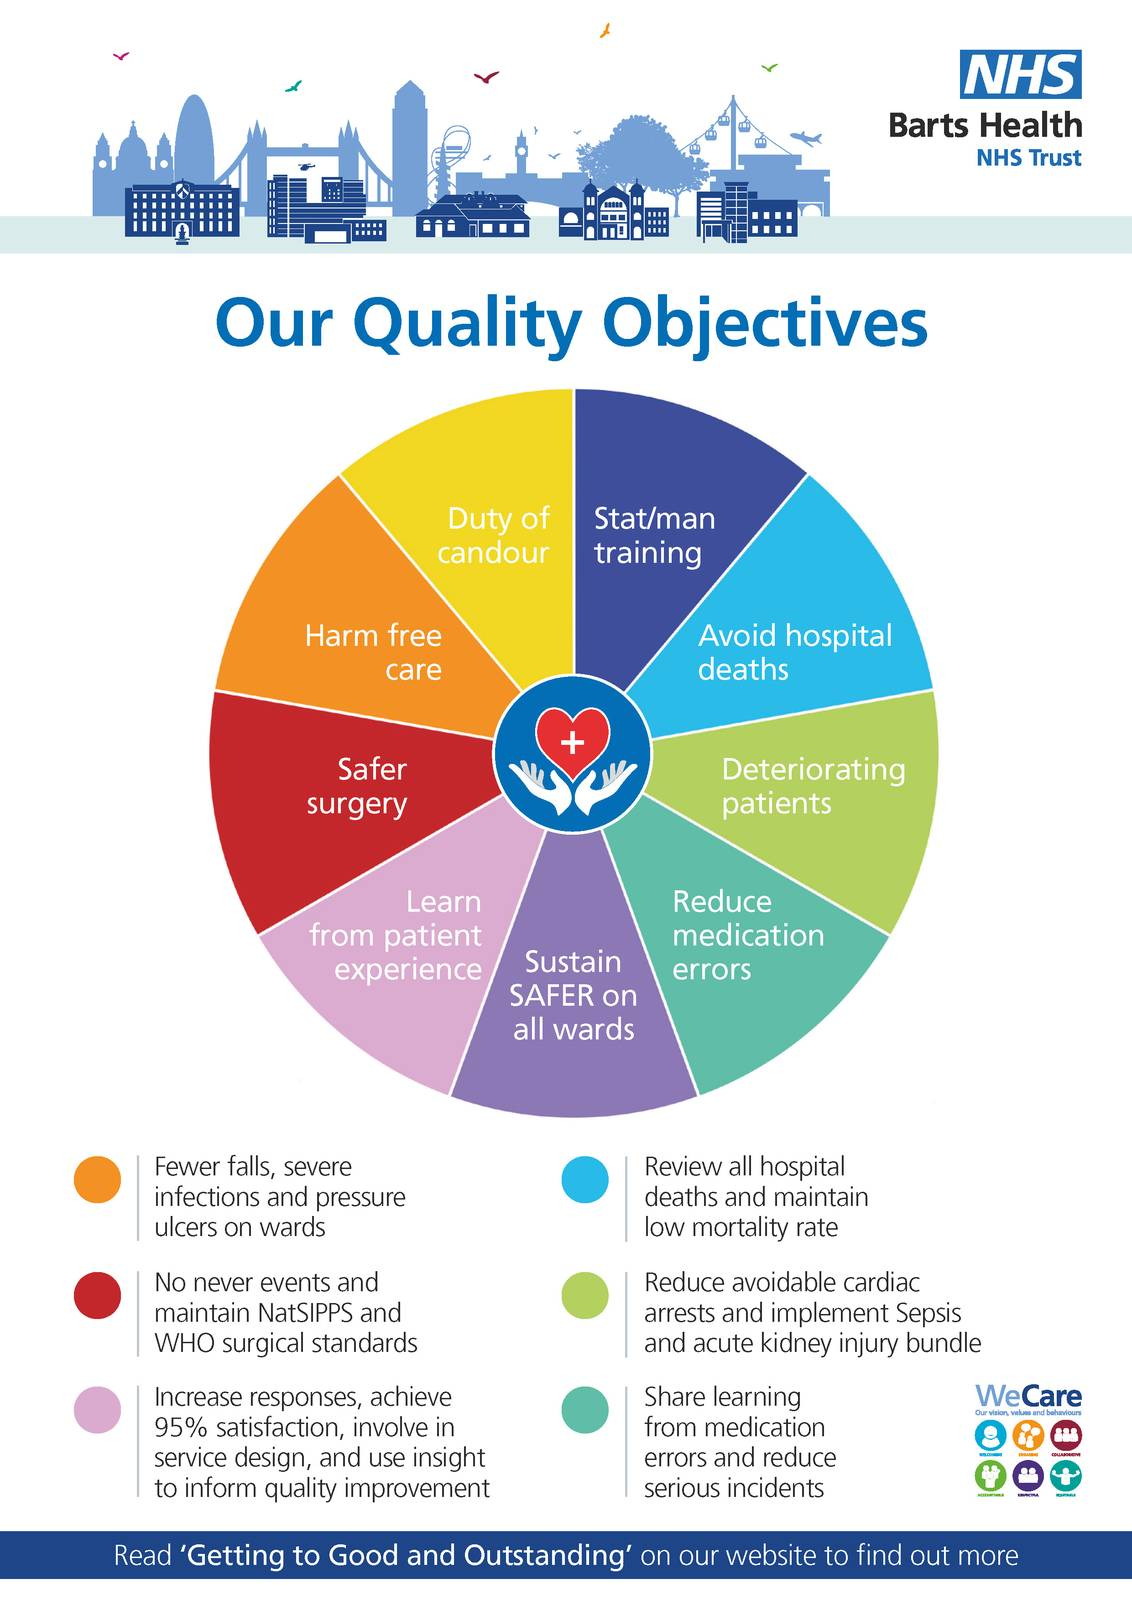 Our quality objectives